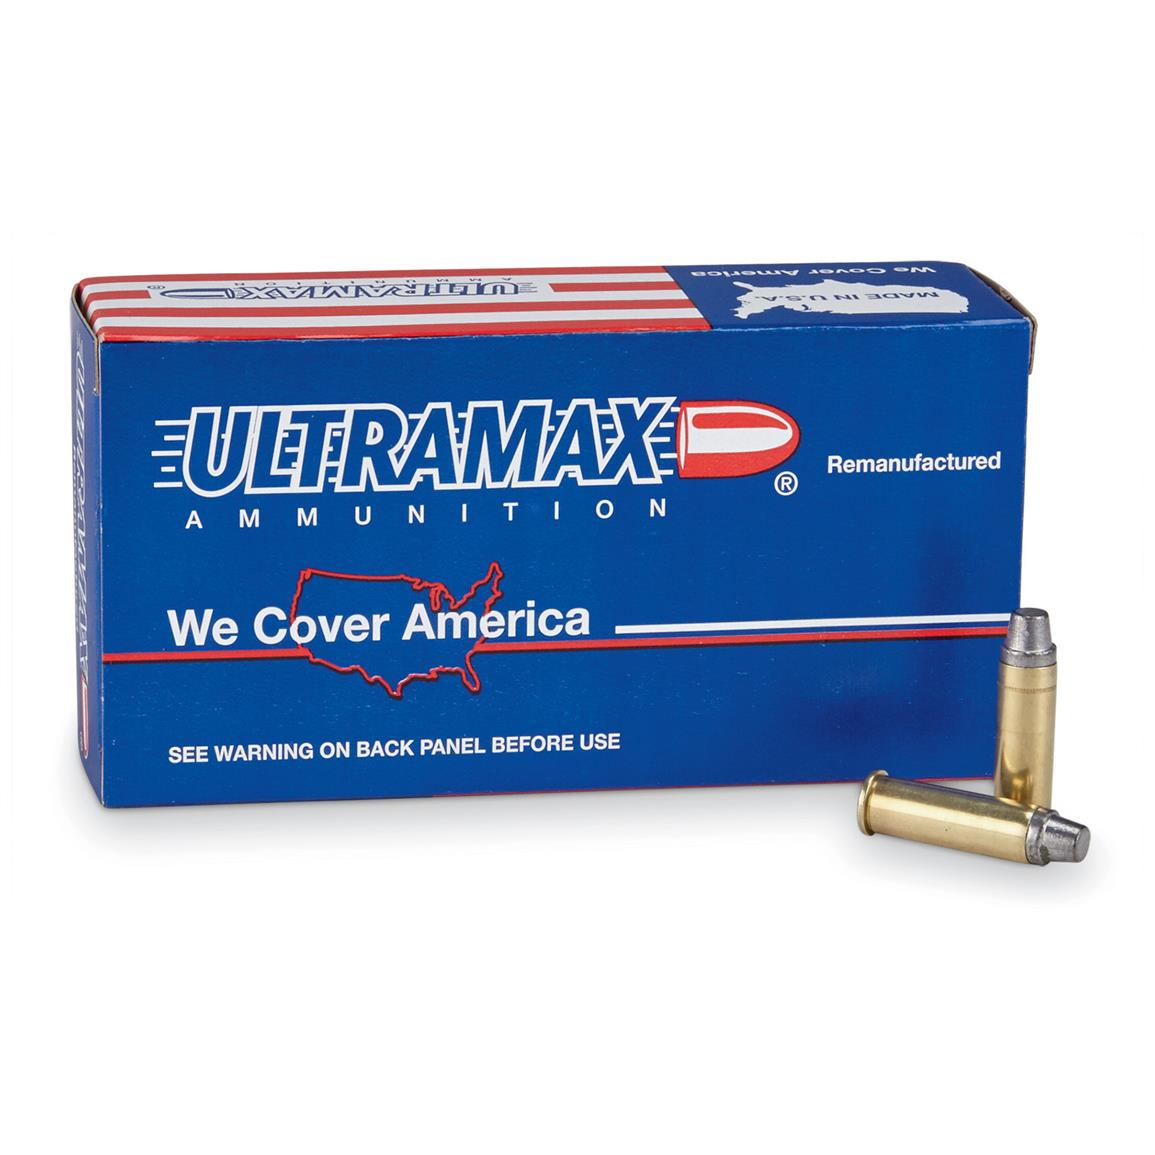 Ultramax, Remanufactured , 38 Special, SWC, 158 Grain, 500 Rounds